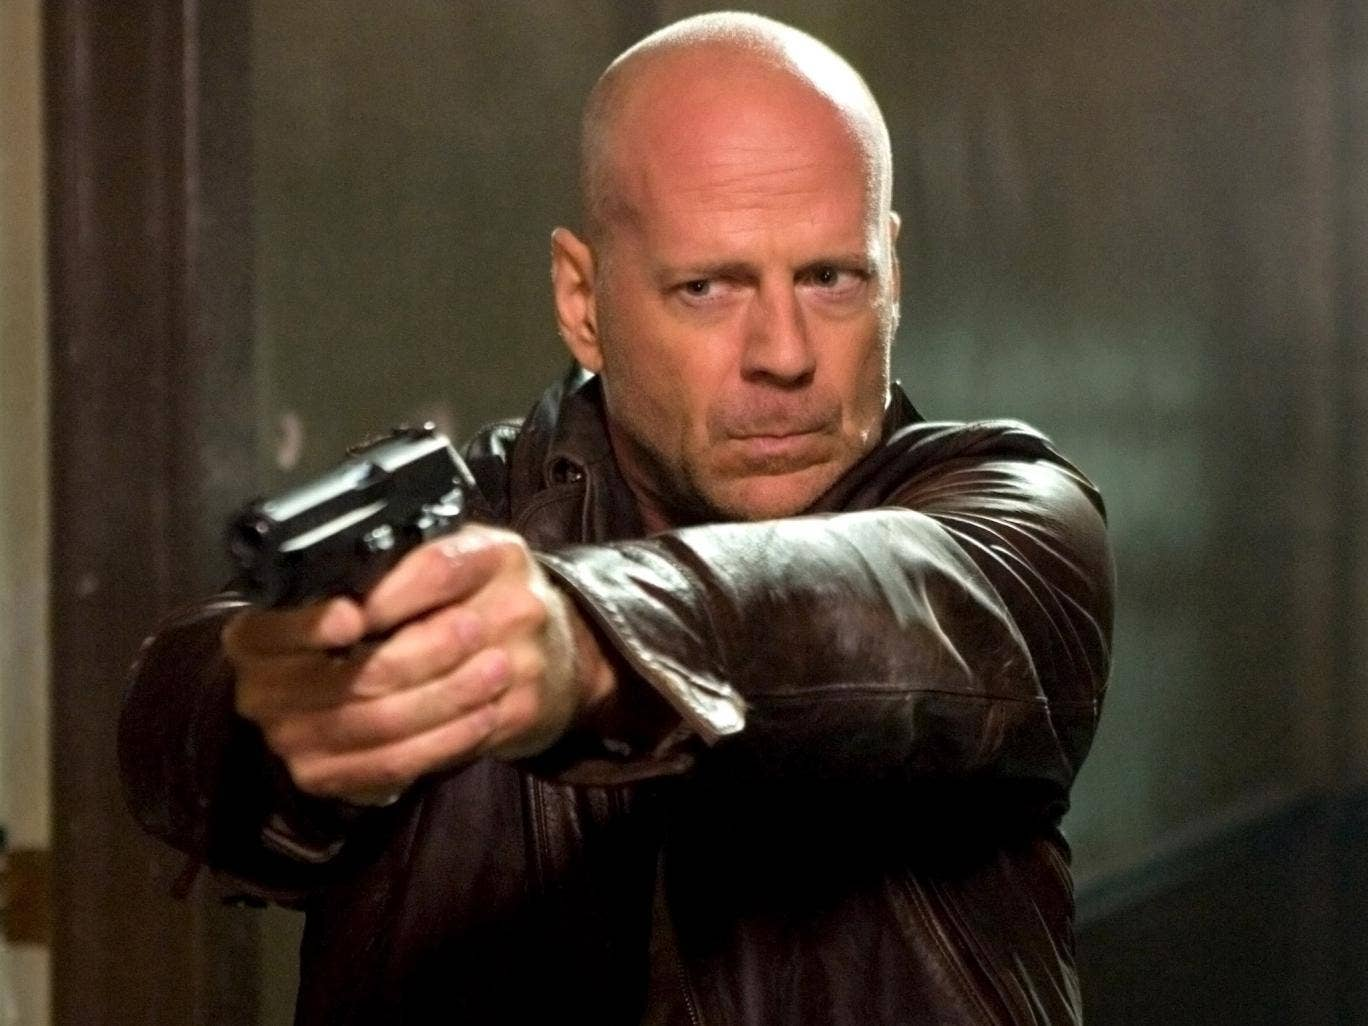 Bruce Willis fires a weapon in 2007's 'Die Hard 4.0'